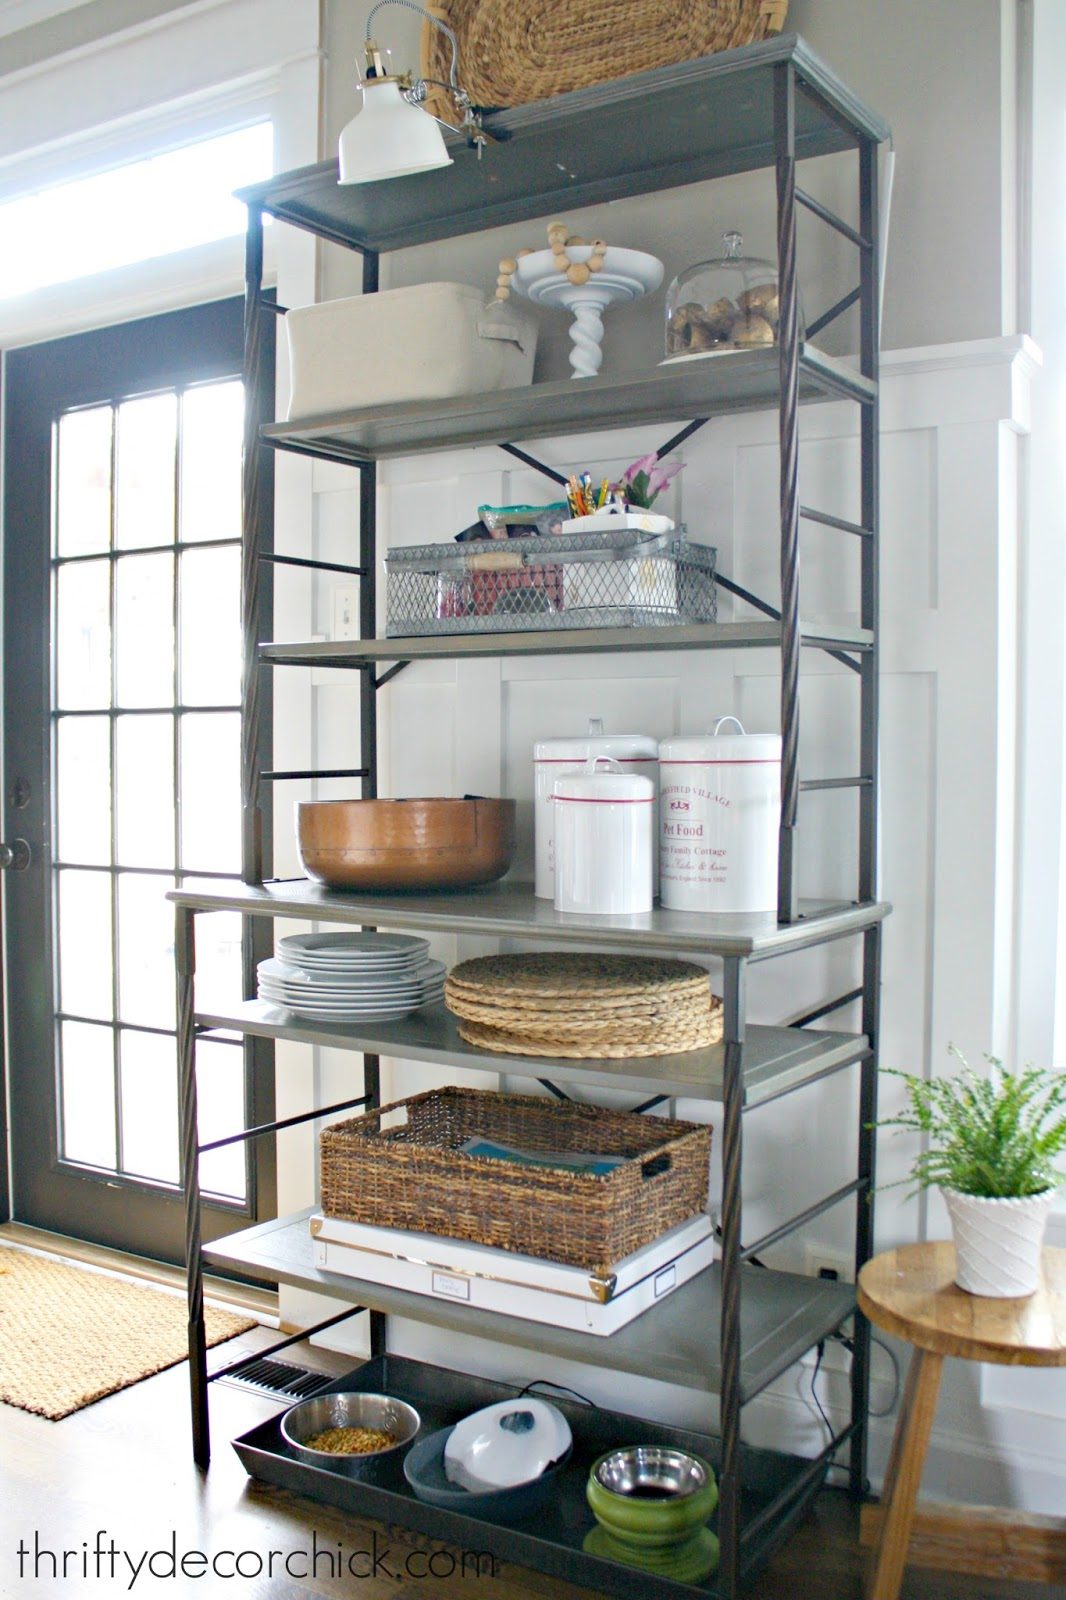 Kitchen Organization Products Hanging Pot Rack Pretty Ways To Organize Everyday Items From Thrifty Decor